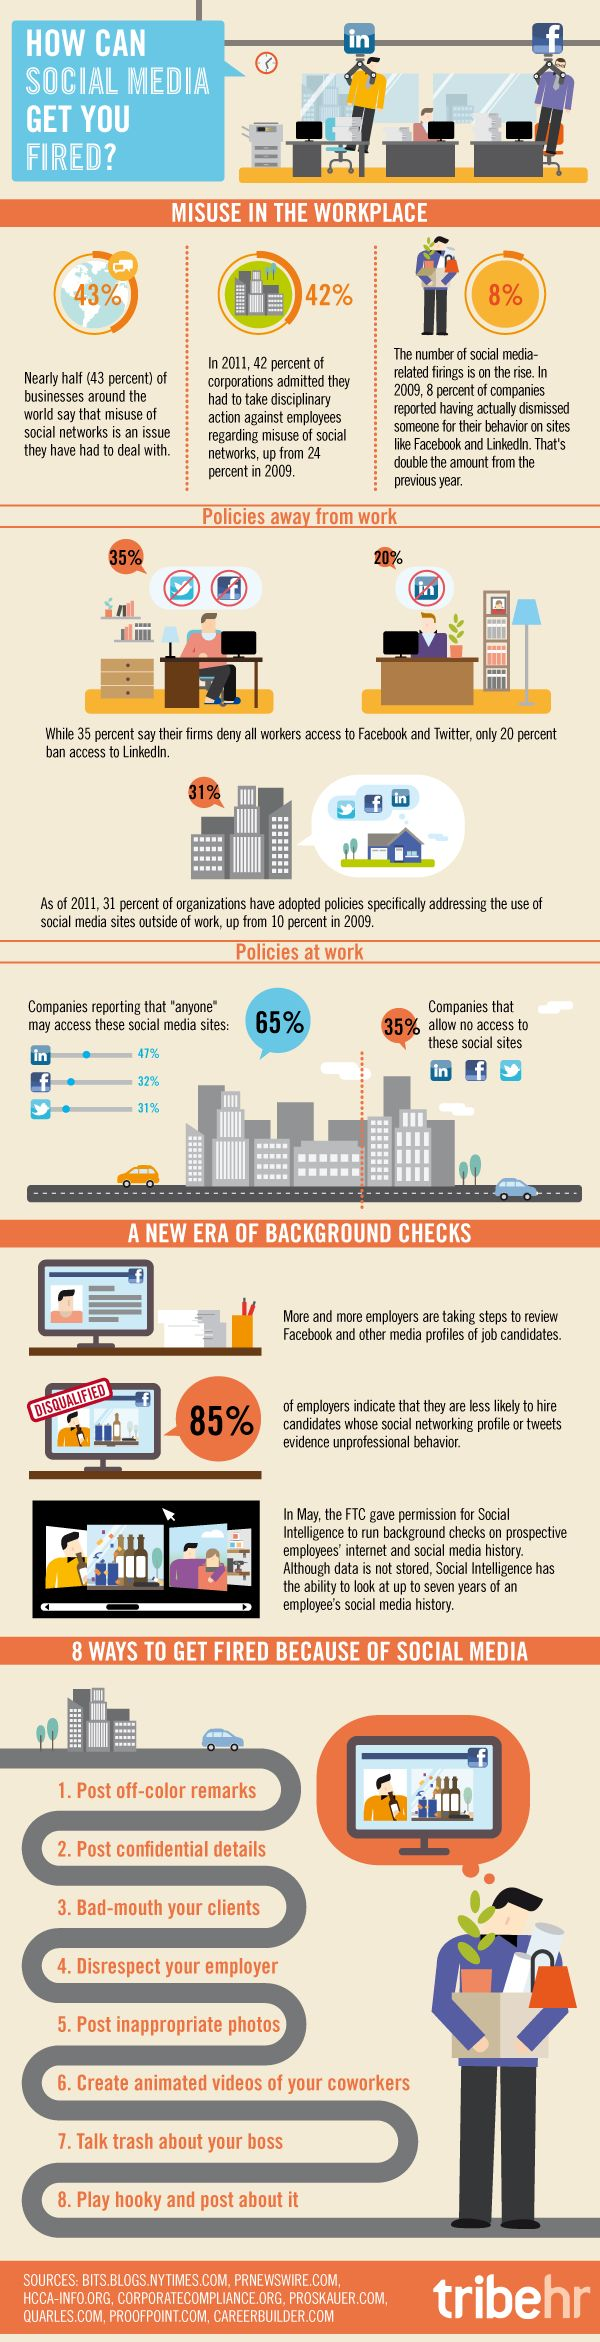 How can social media get you fired? Infographic from @TribeHR